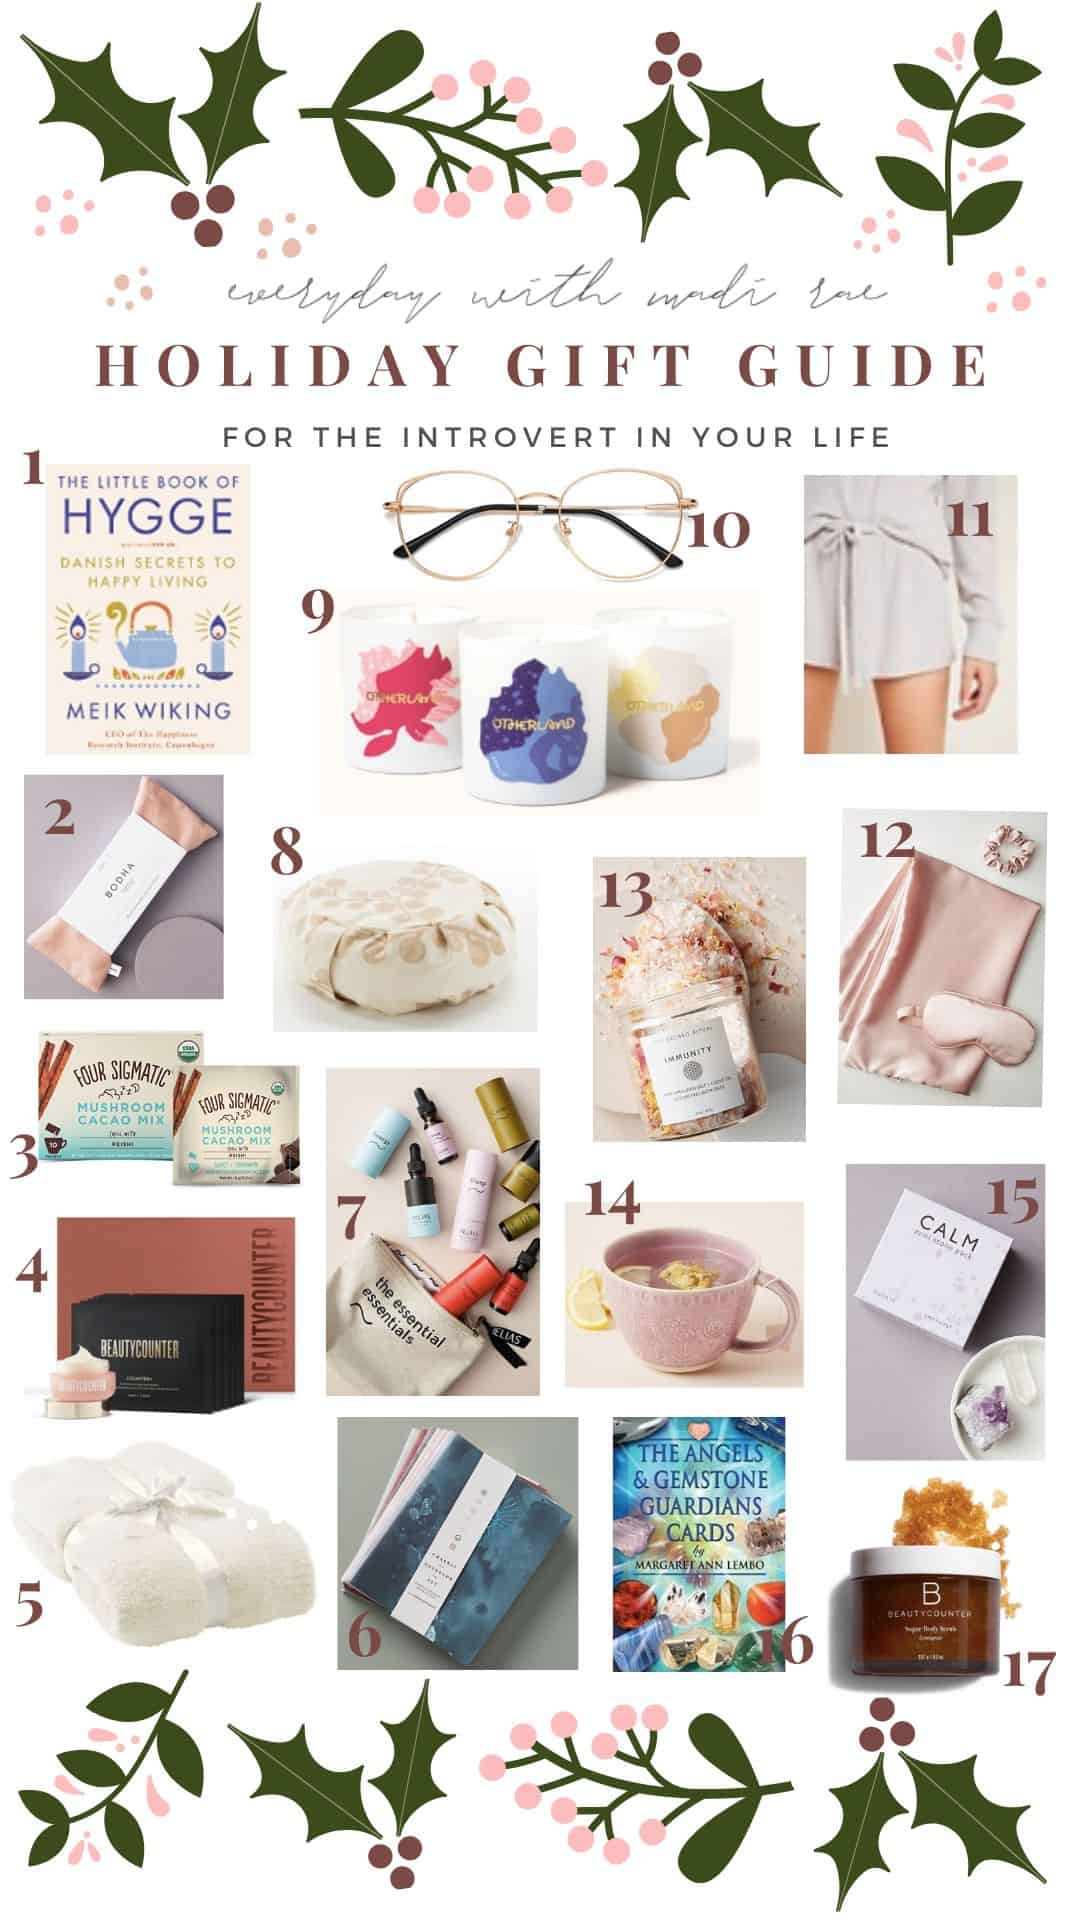 2019 Holiday Gift Guide For The Introvert In Your Life - which includes 17 items, all perfect for a cozy night in, some major self care & relaxation!